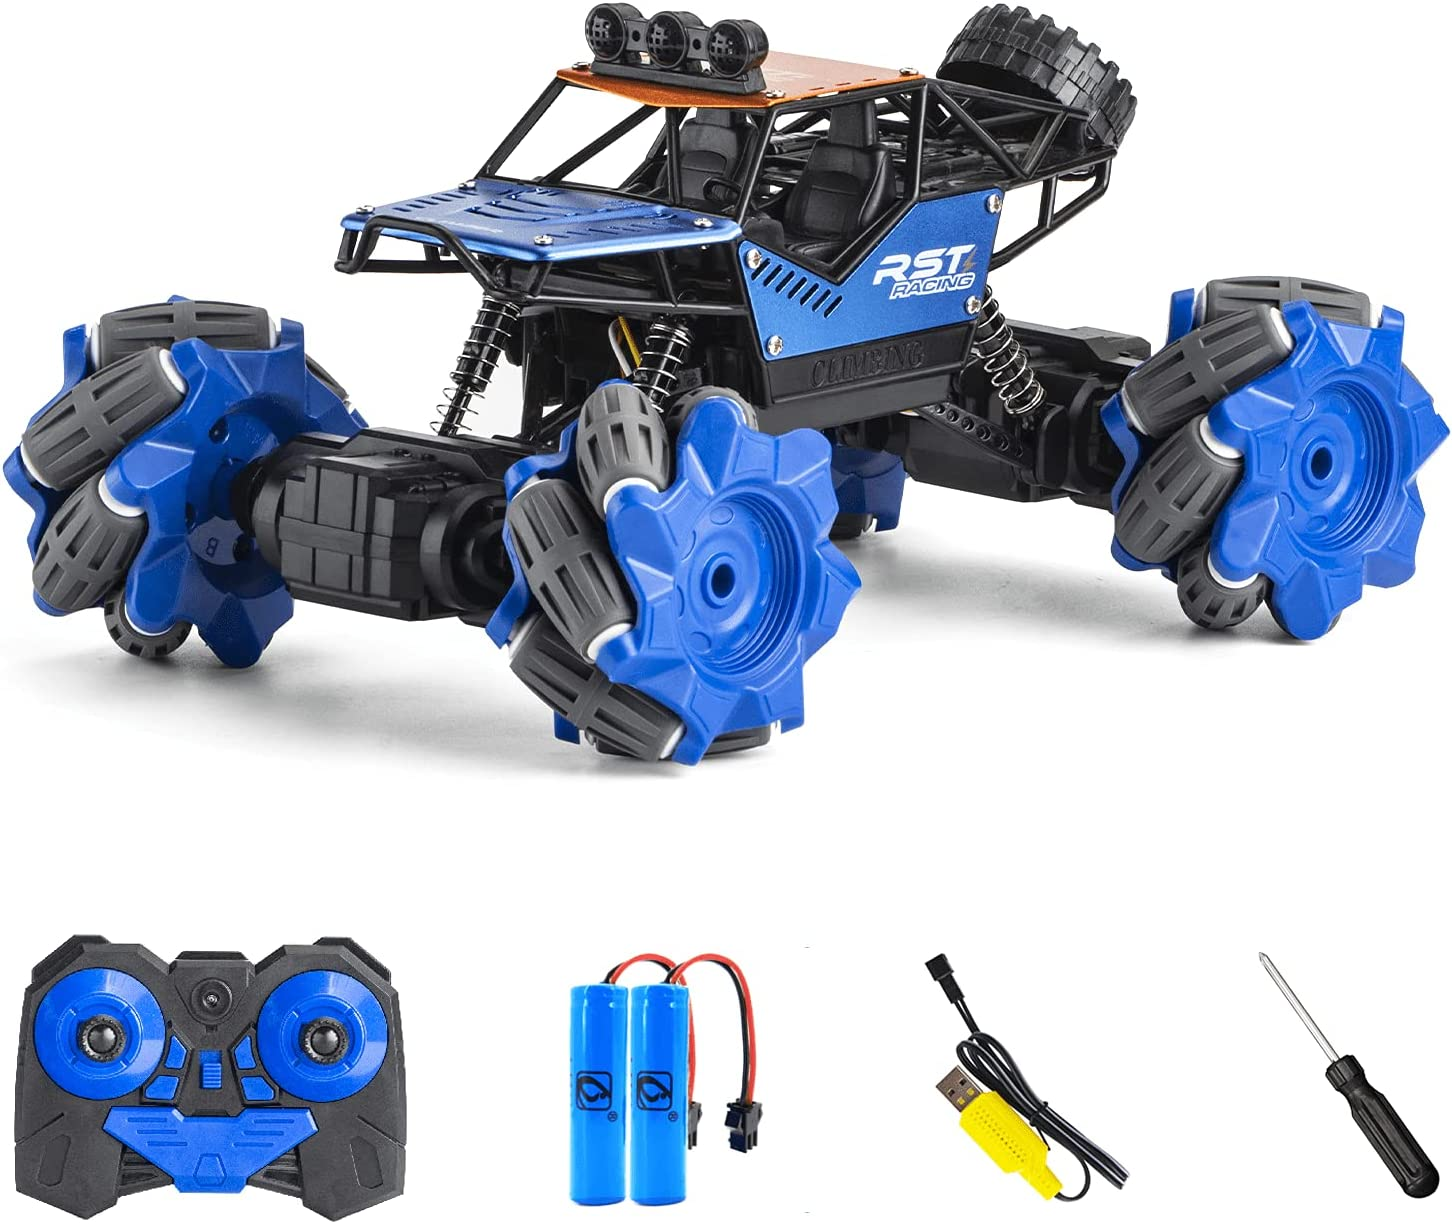 Le-Hoki Super beauty product New sales restock quality top Remote Control Car for Boys 1:16 All 4W RC Terrain